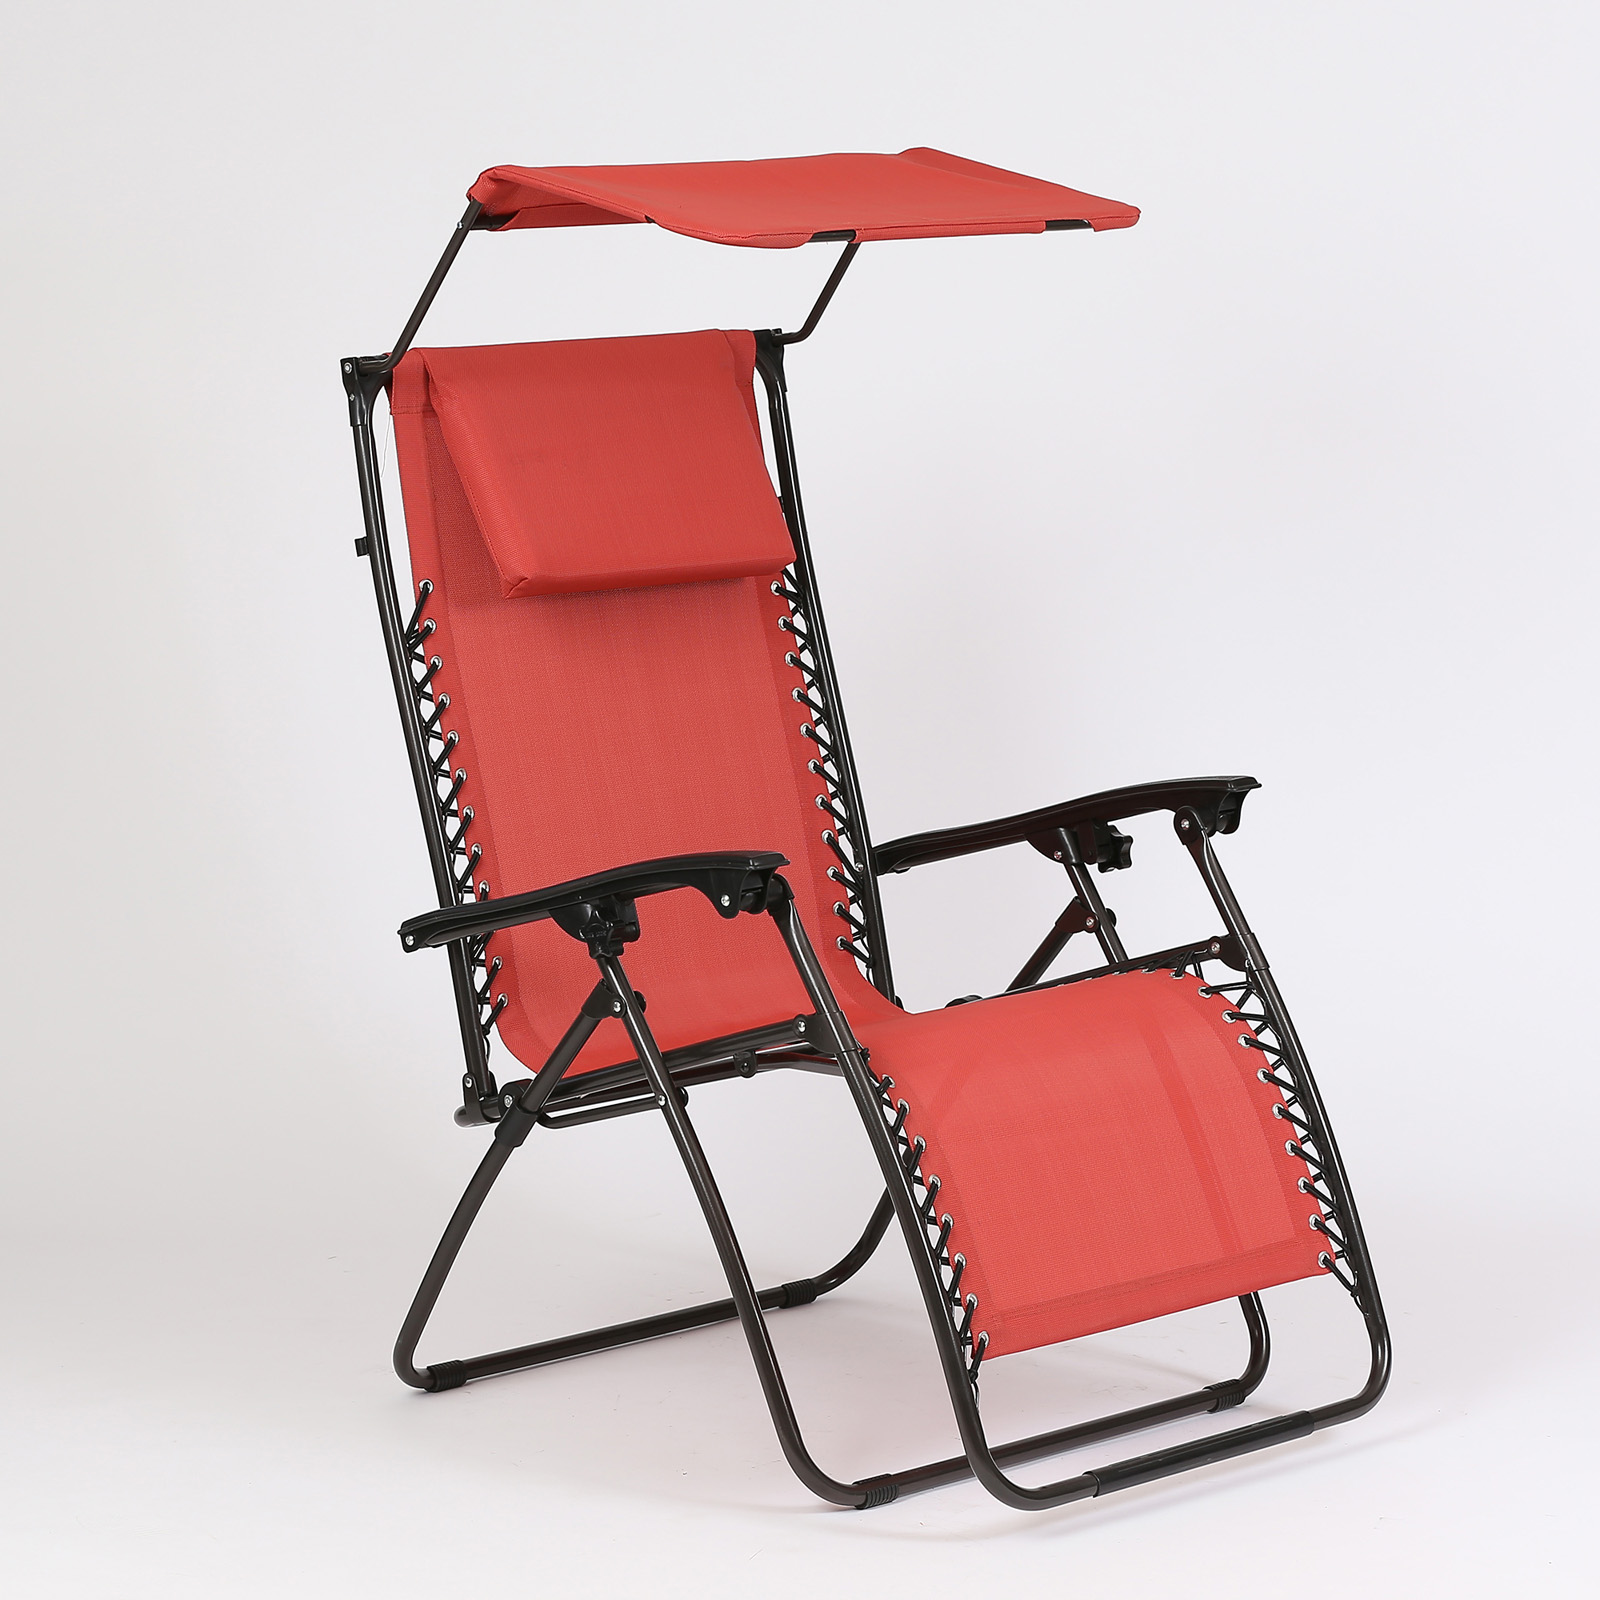 Gravity Lounge Chair Details About Winsome House Zero Gravity Lounge Chair With Canopy